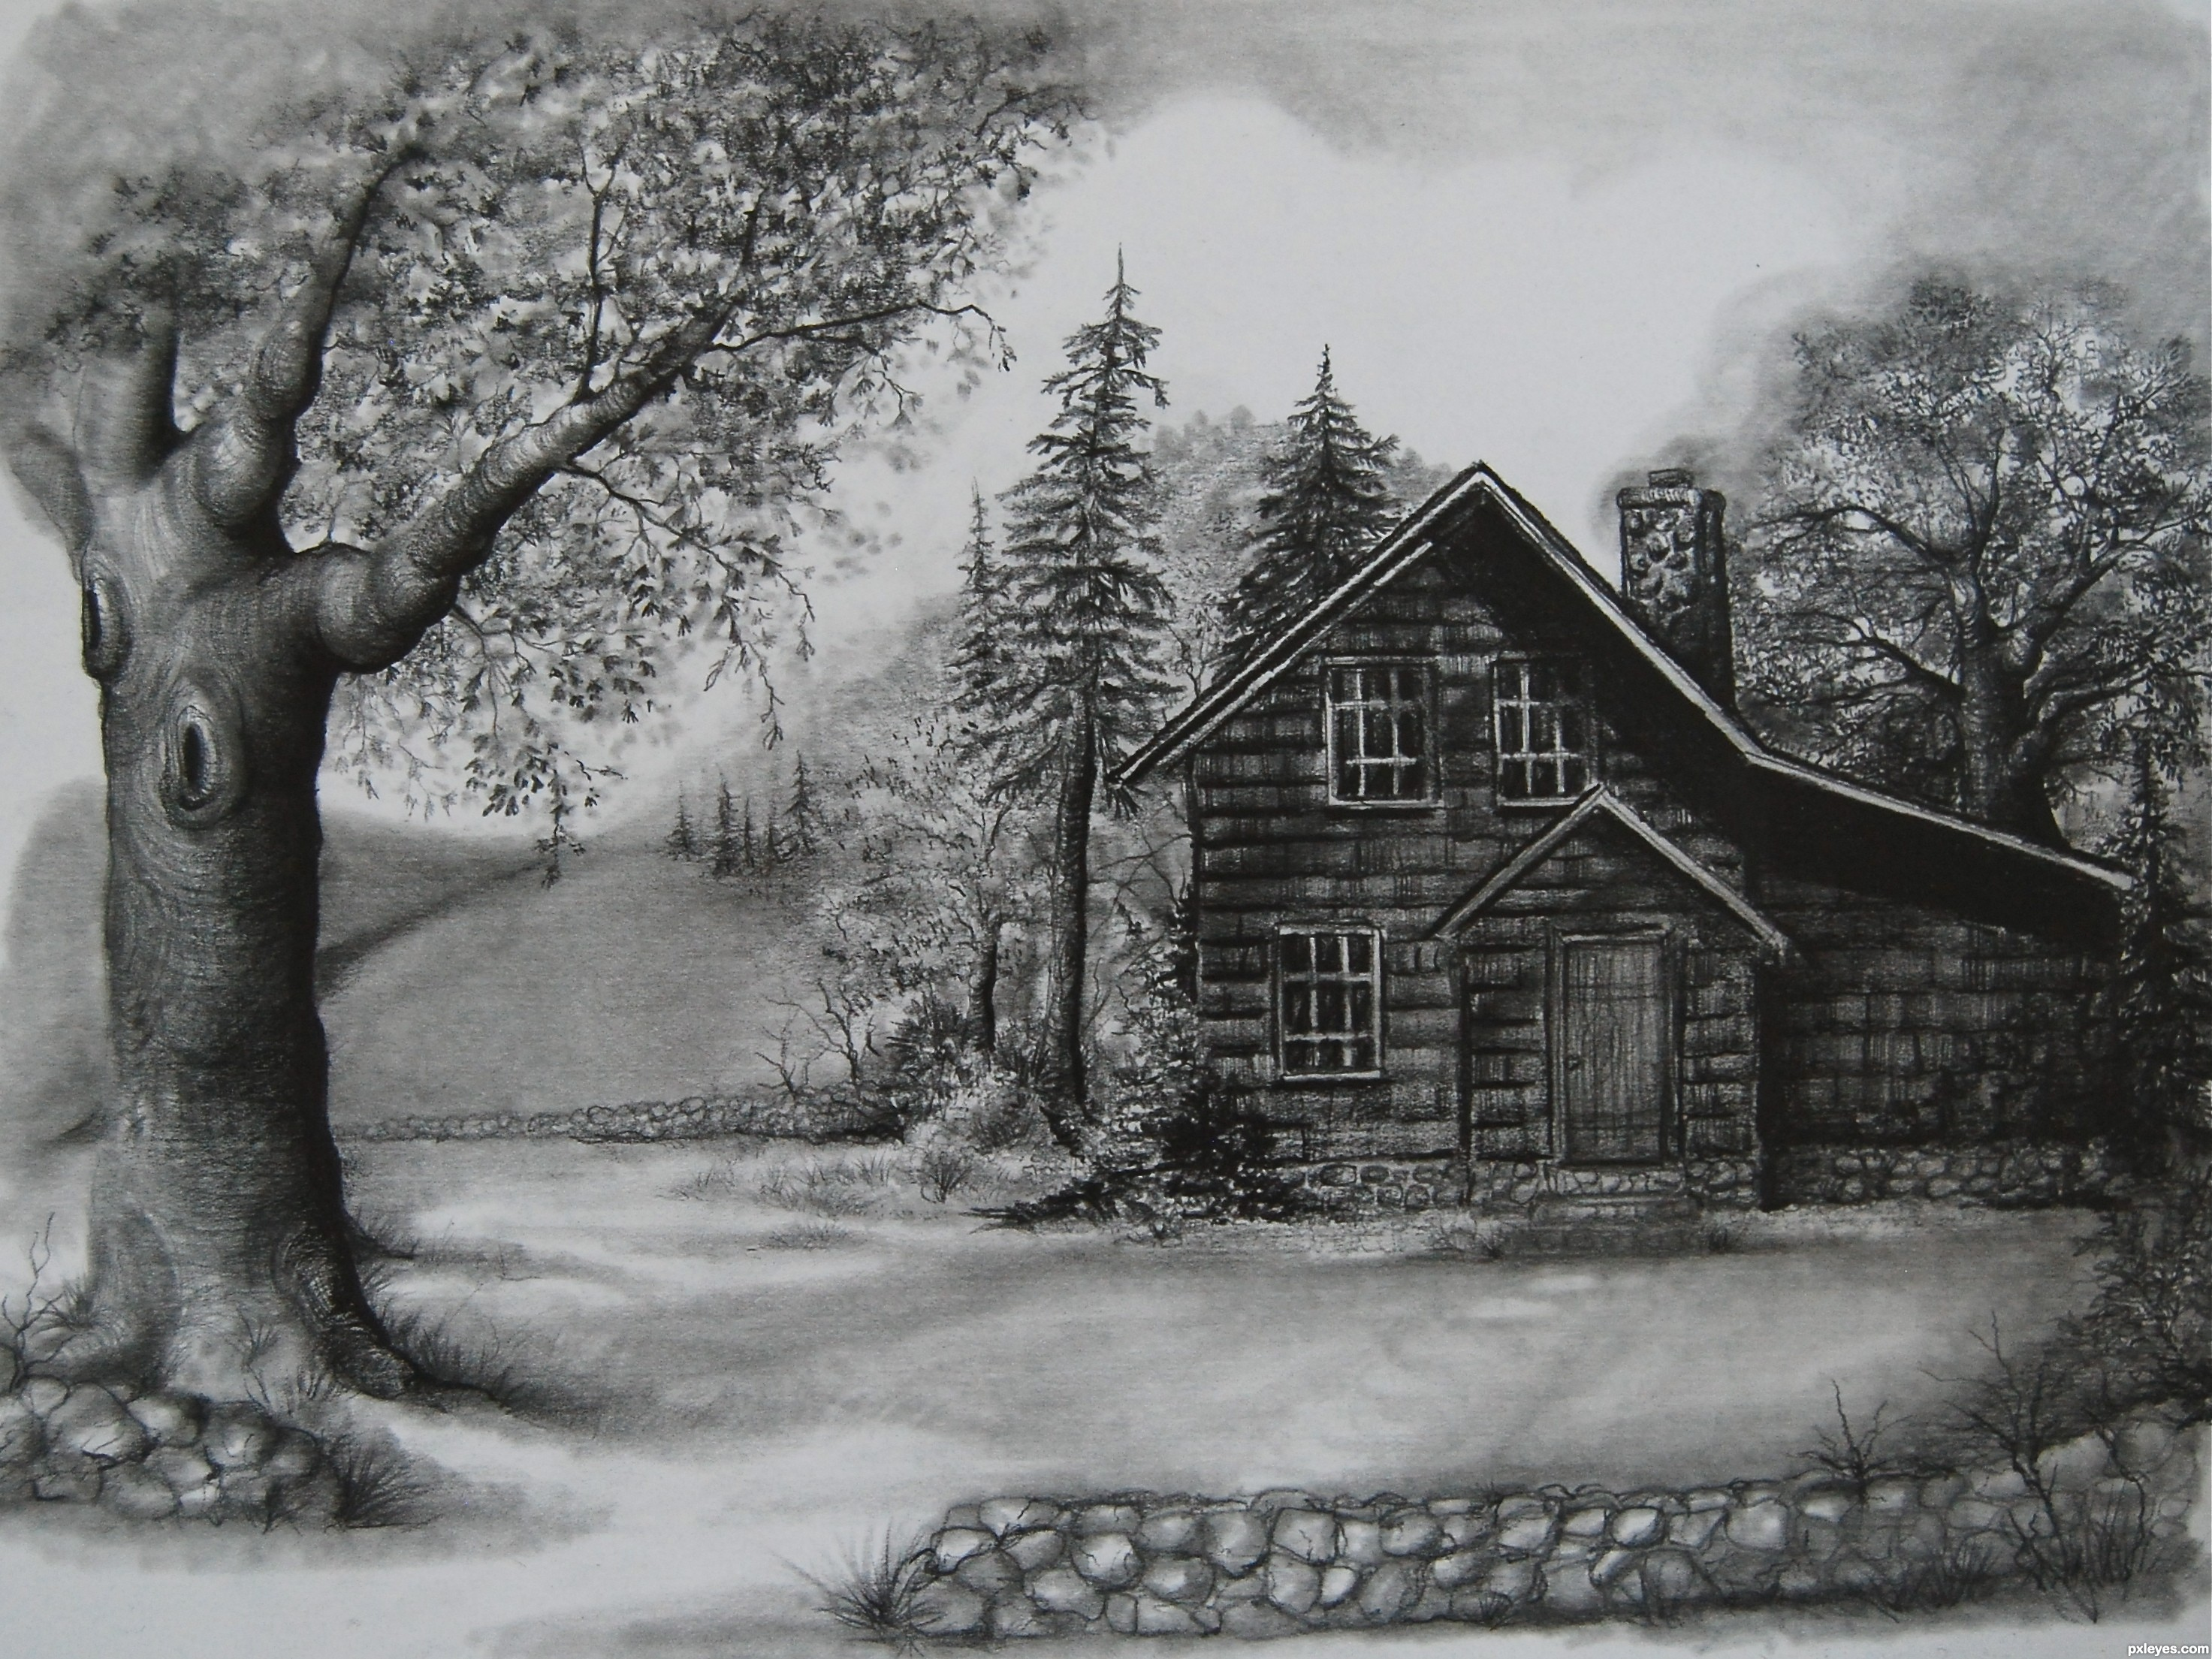 Drawn scenery outstanding With Types for sceneries pencils